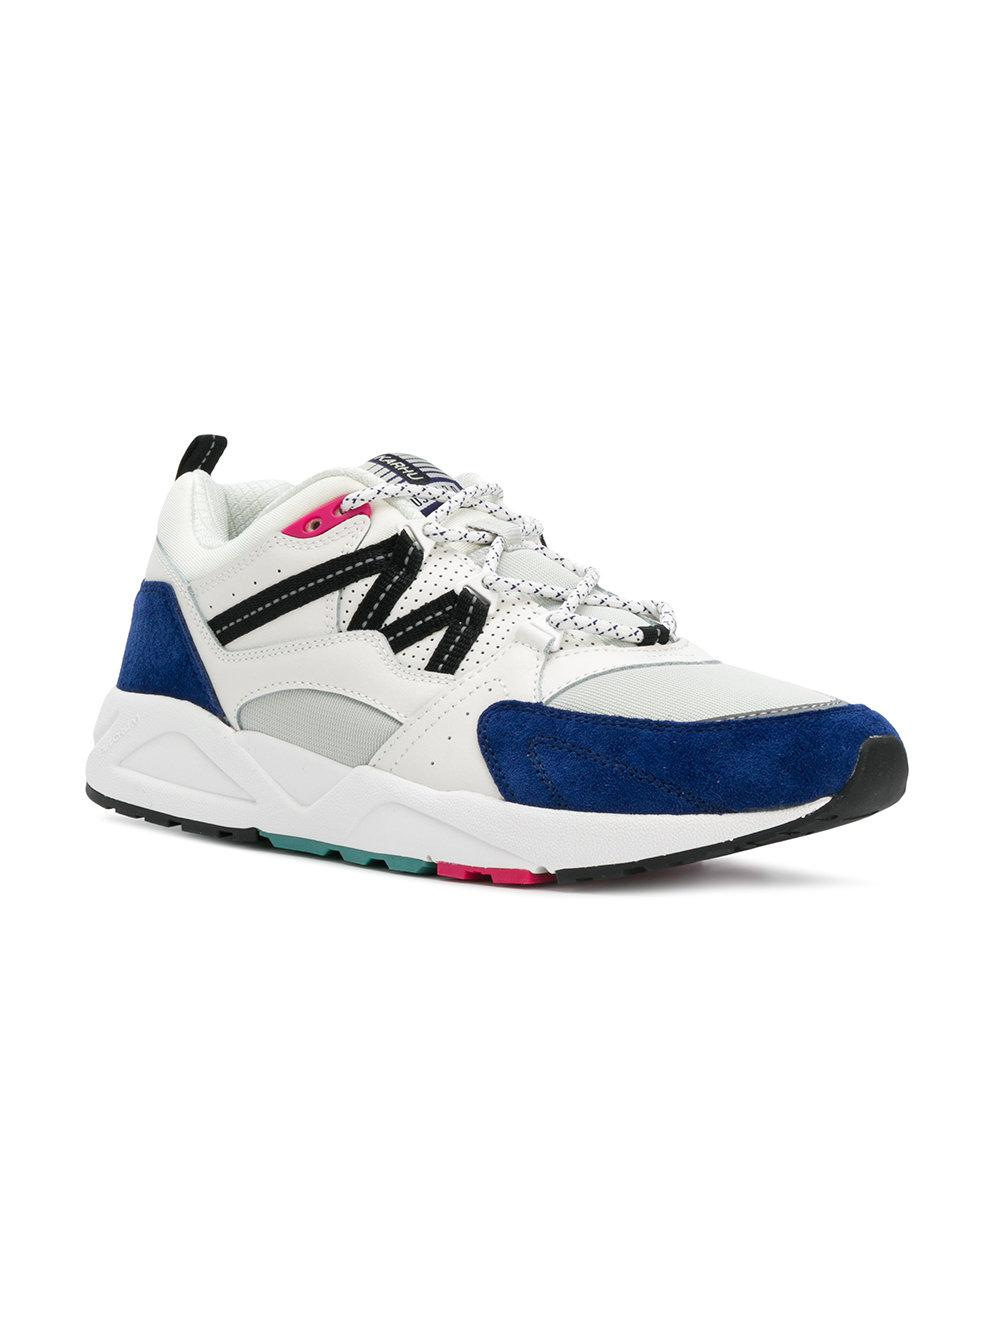 Karhu Leather Fusion 2.0 Sneakers in Blue